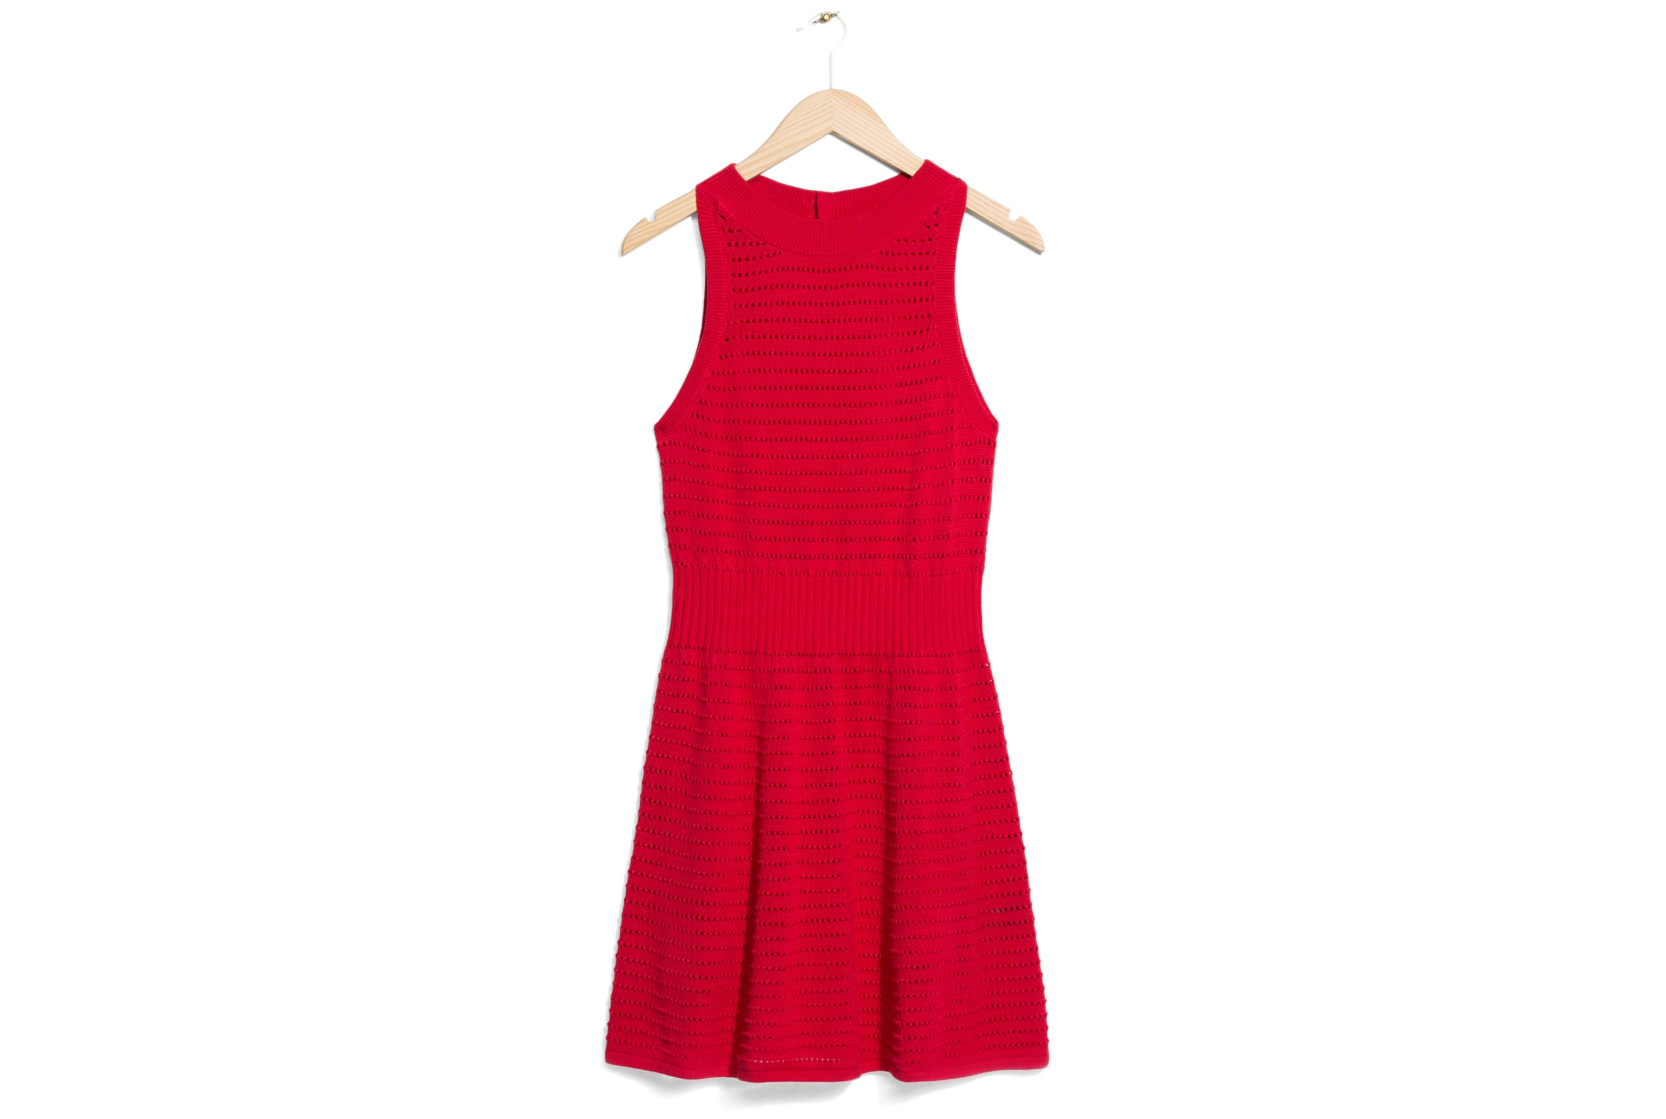 & Other Stories Pointelle Knit Dress